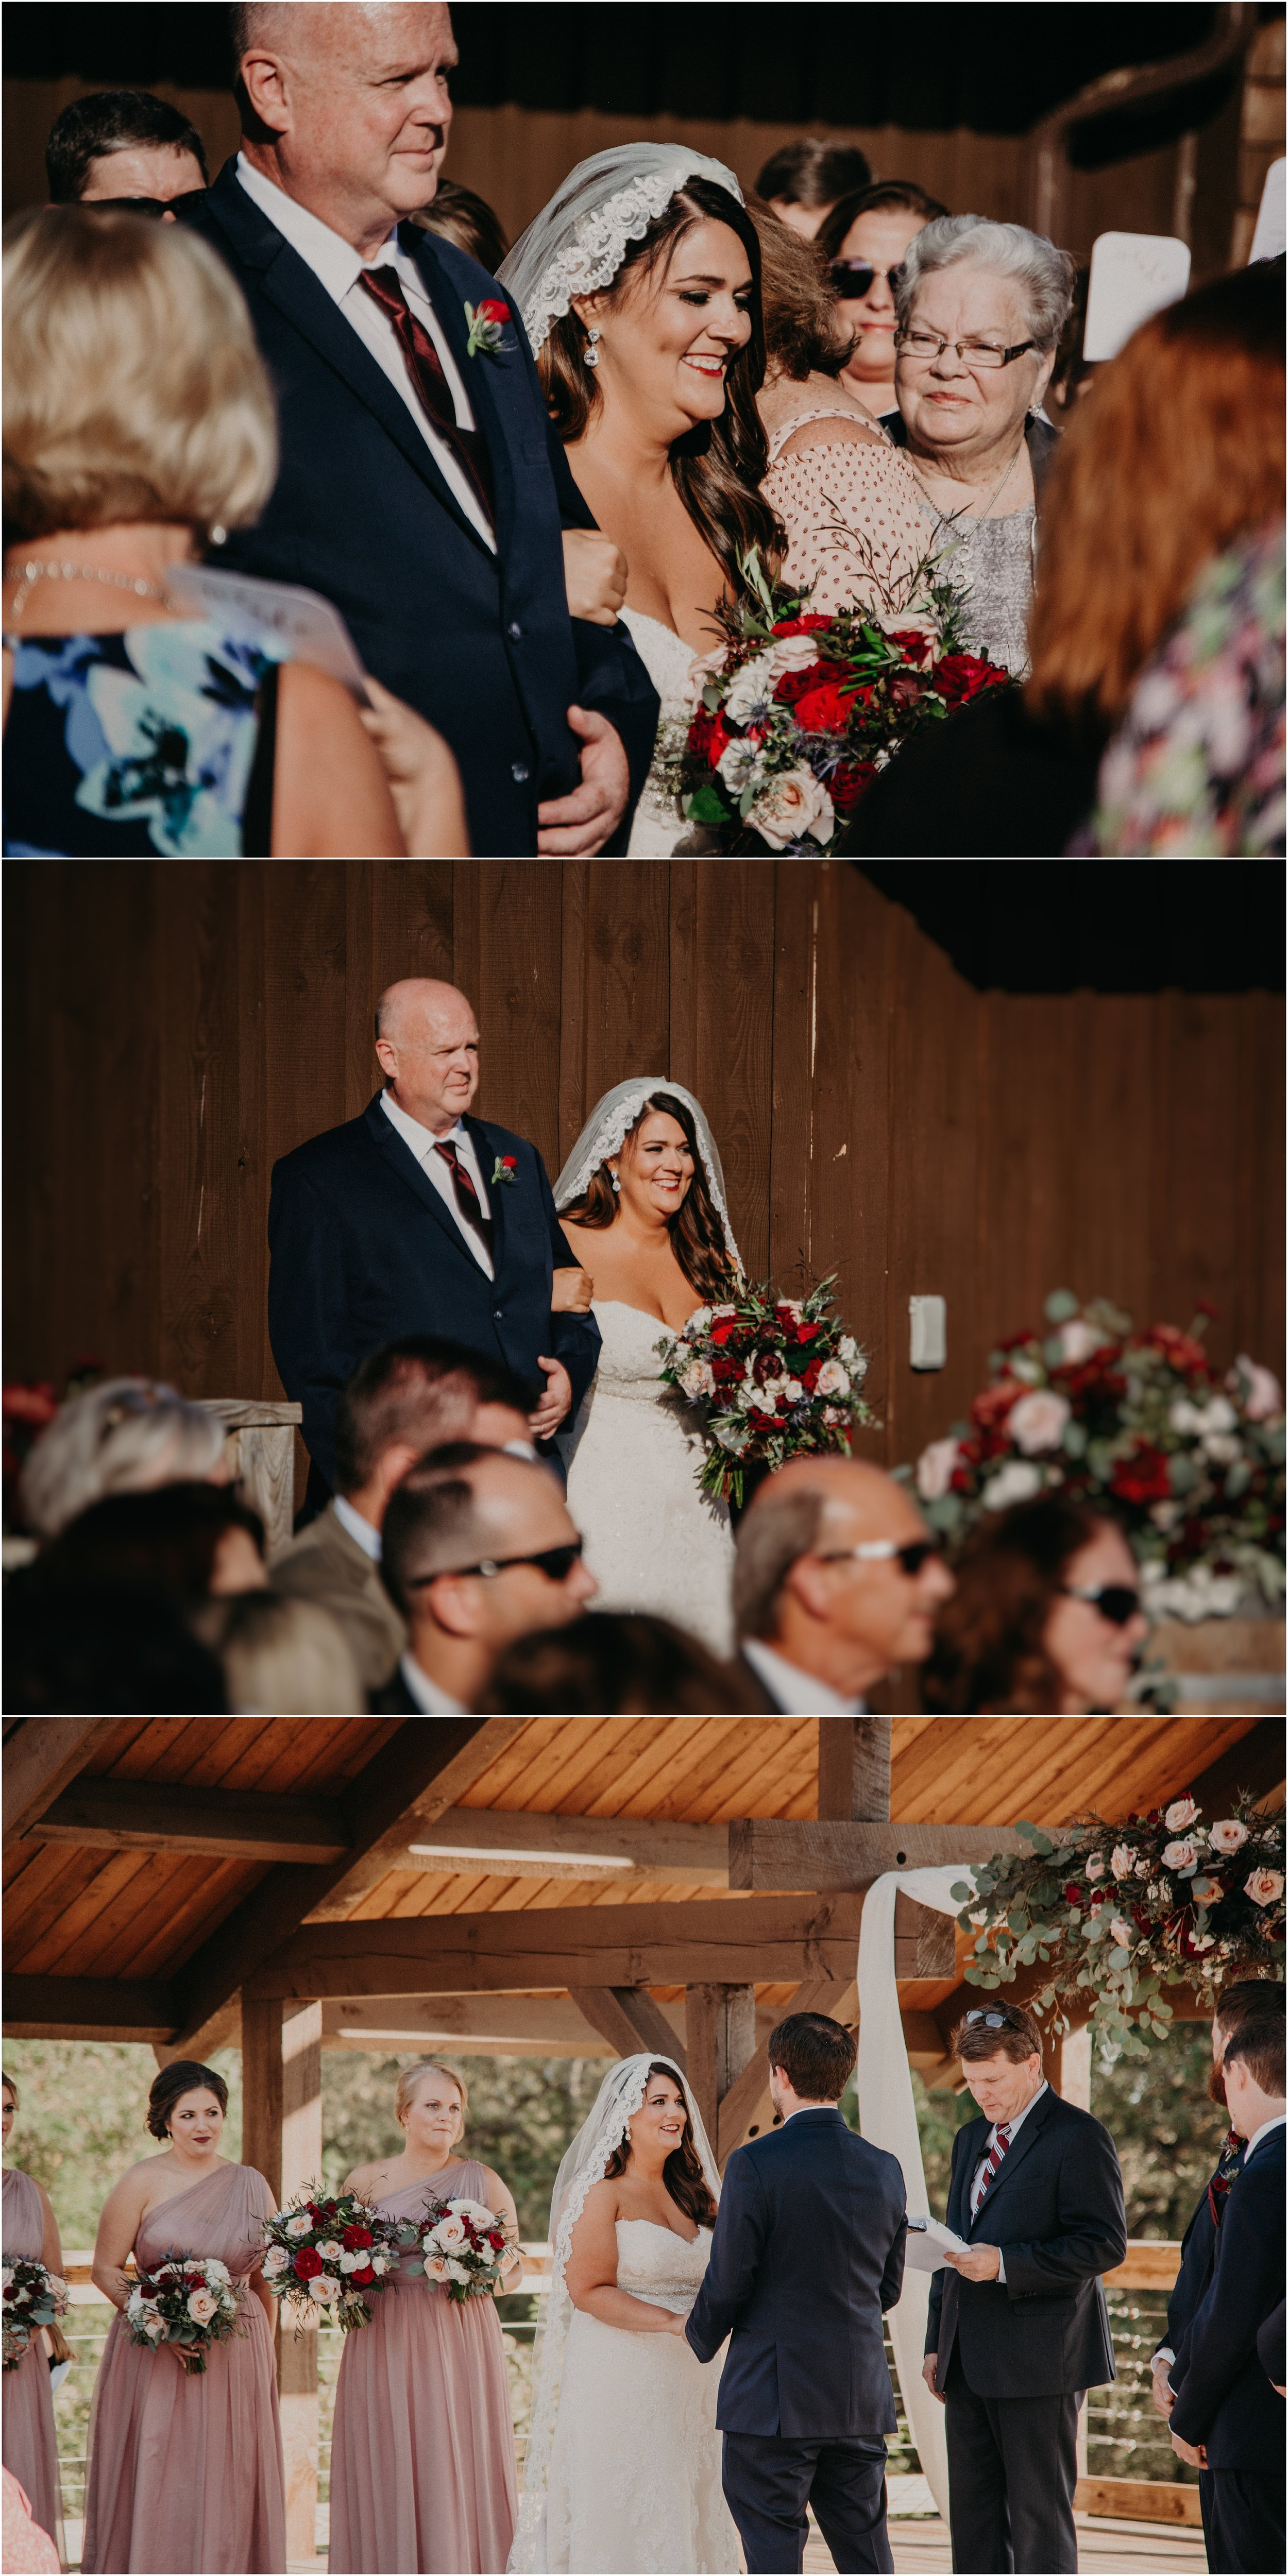 Father of the bride walks his daughter down the aisle to her waiting groom